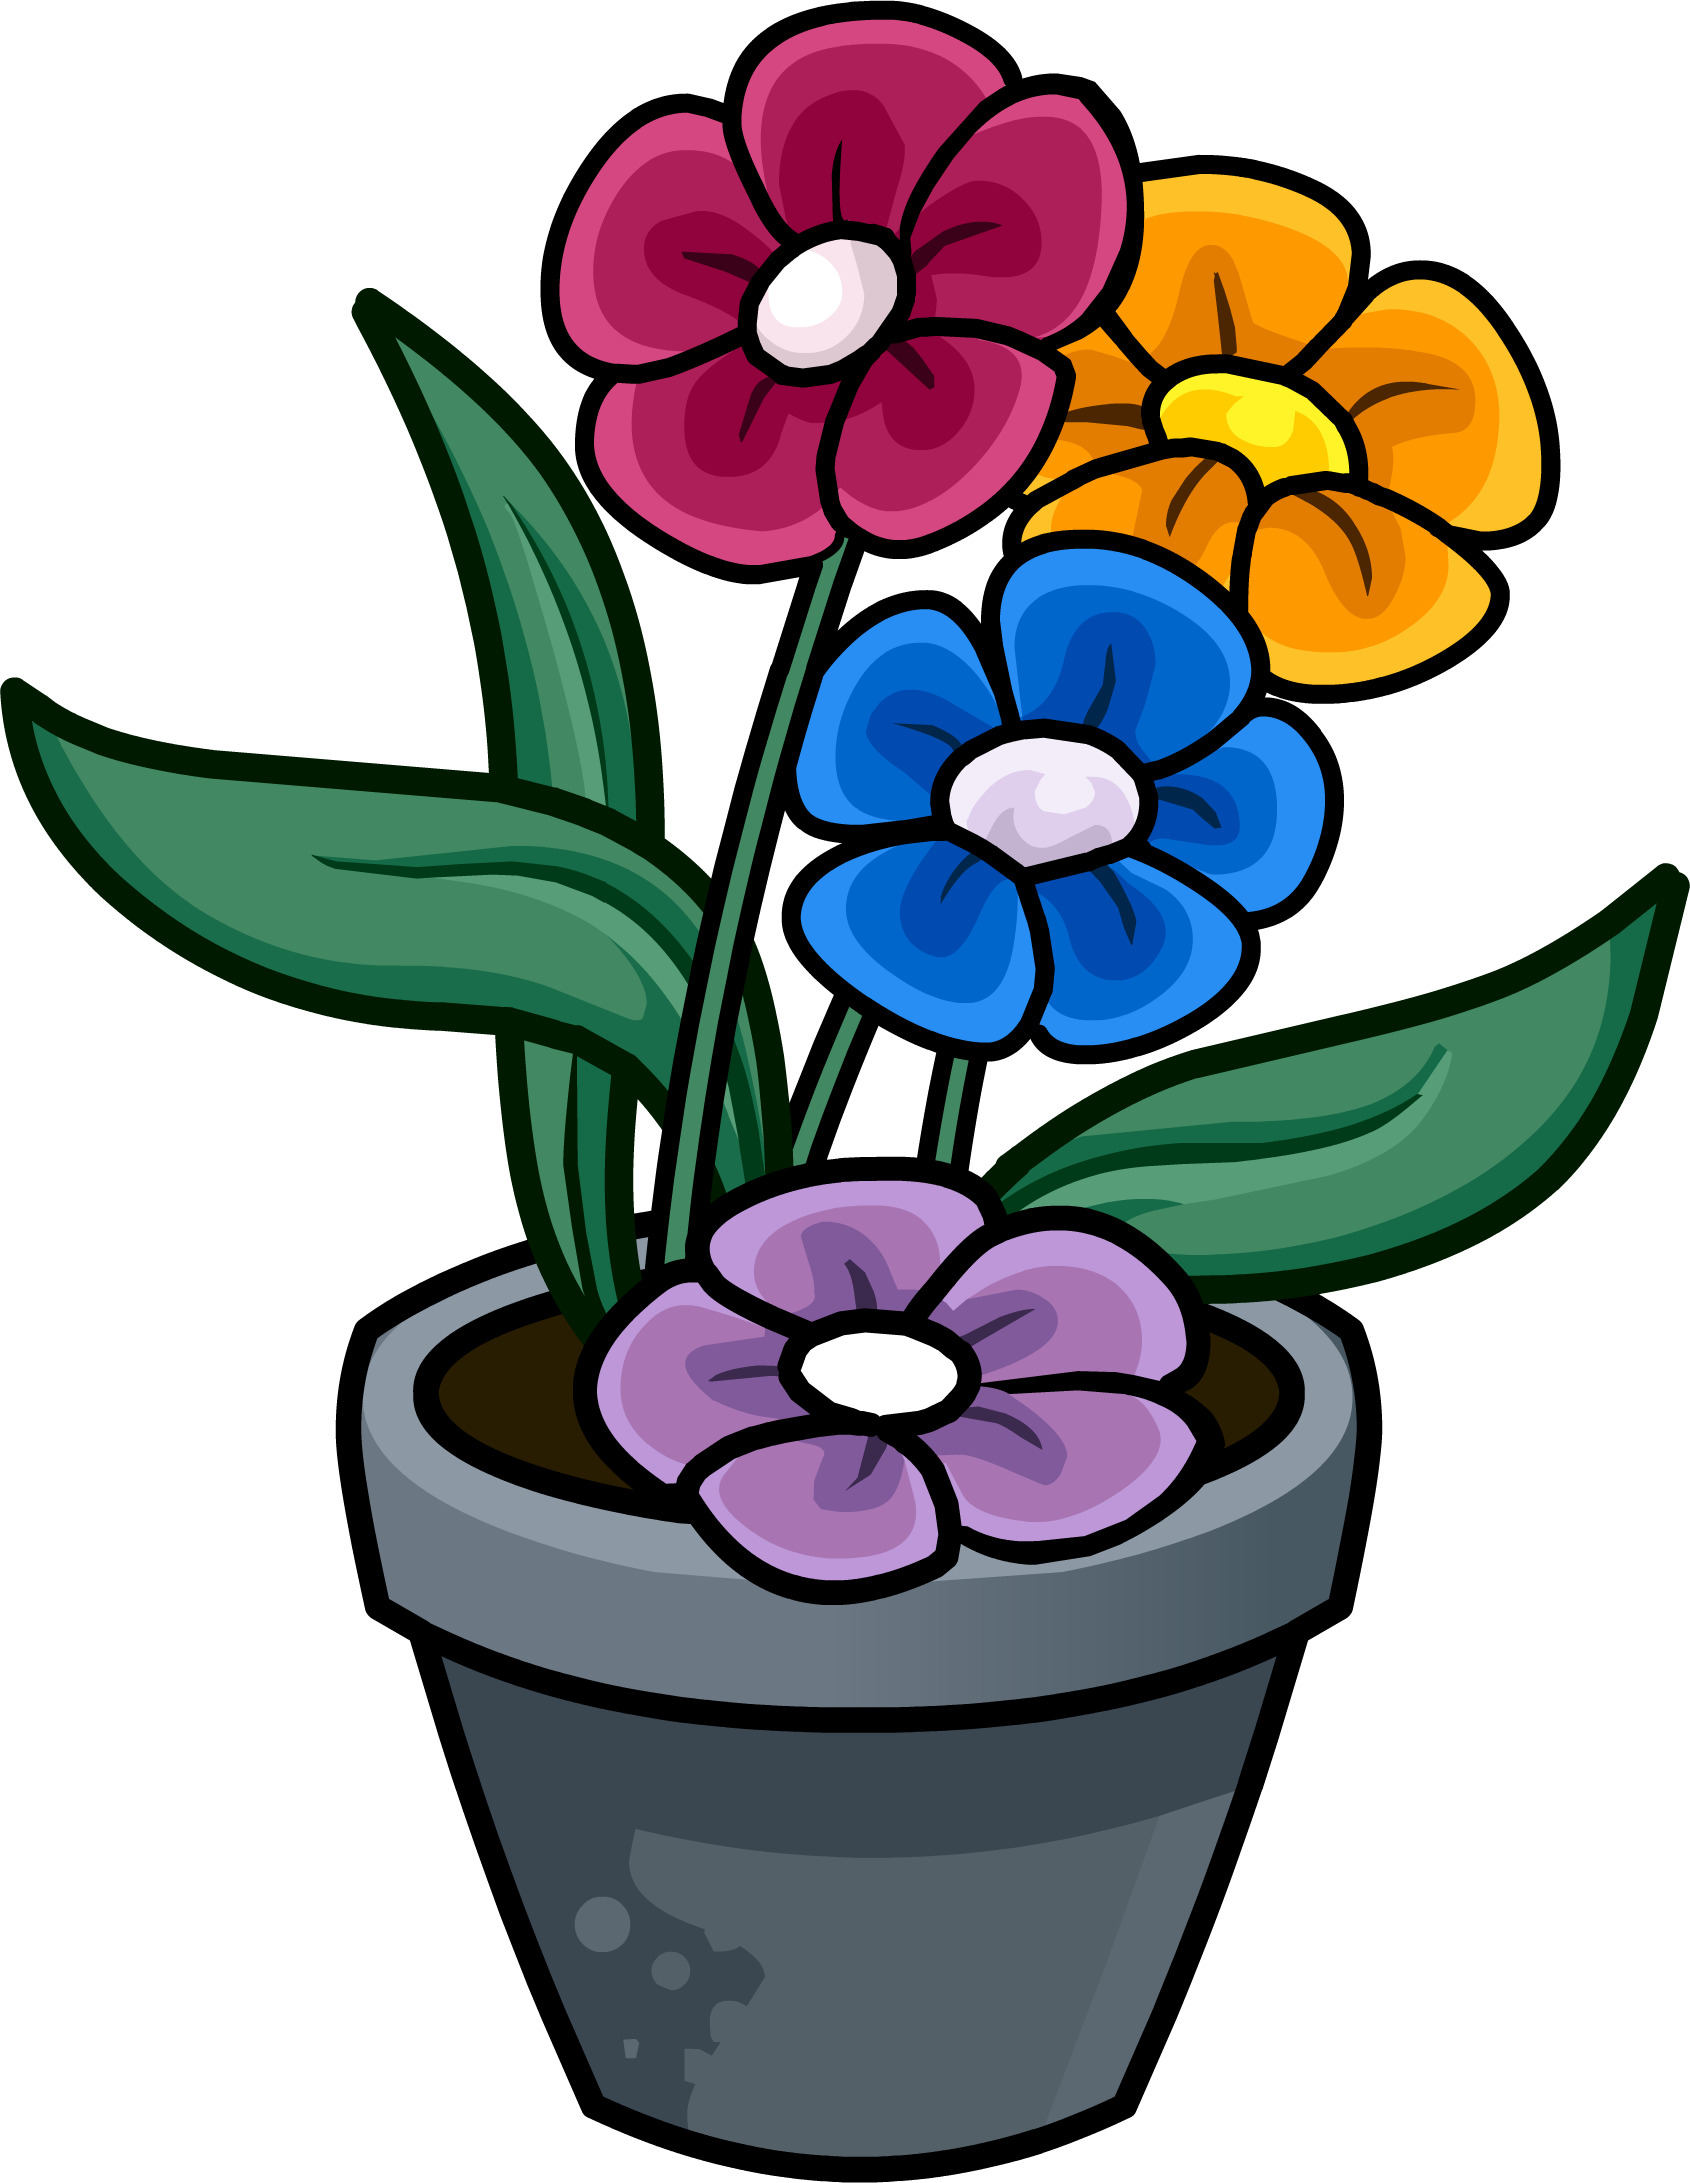 image - flower pot | club penguin wiki | fandom poweredwikia